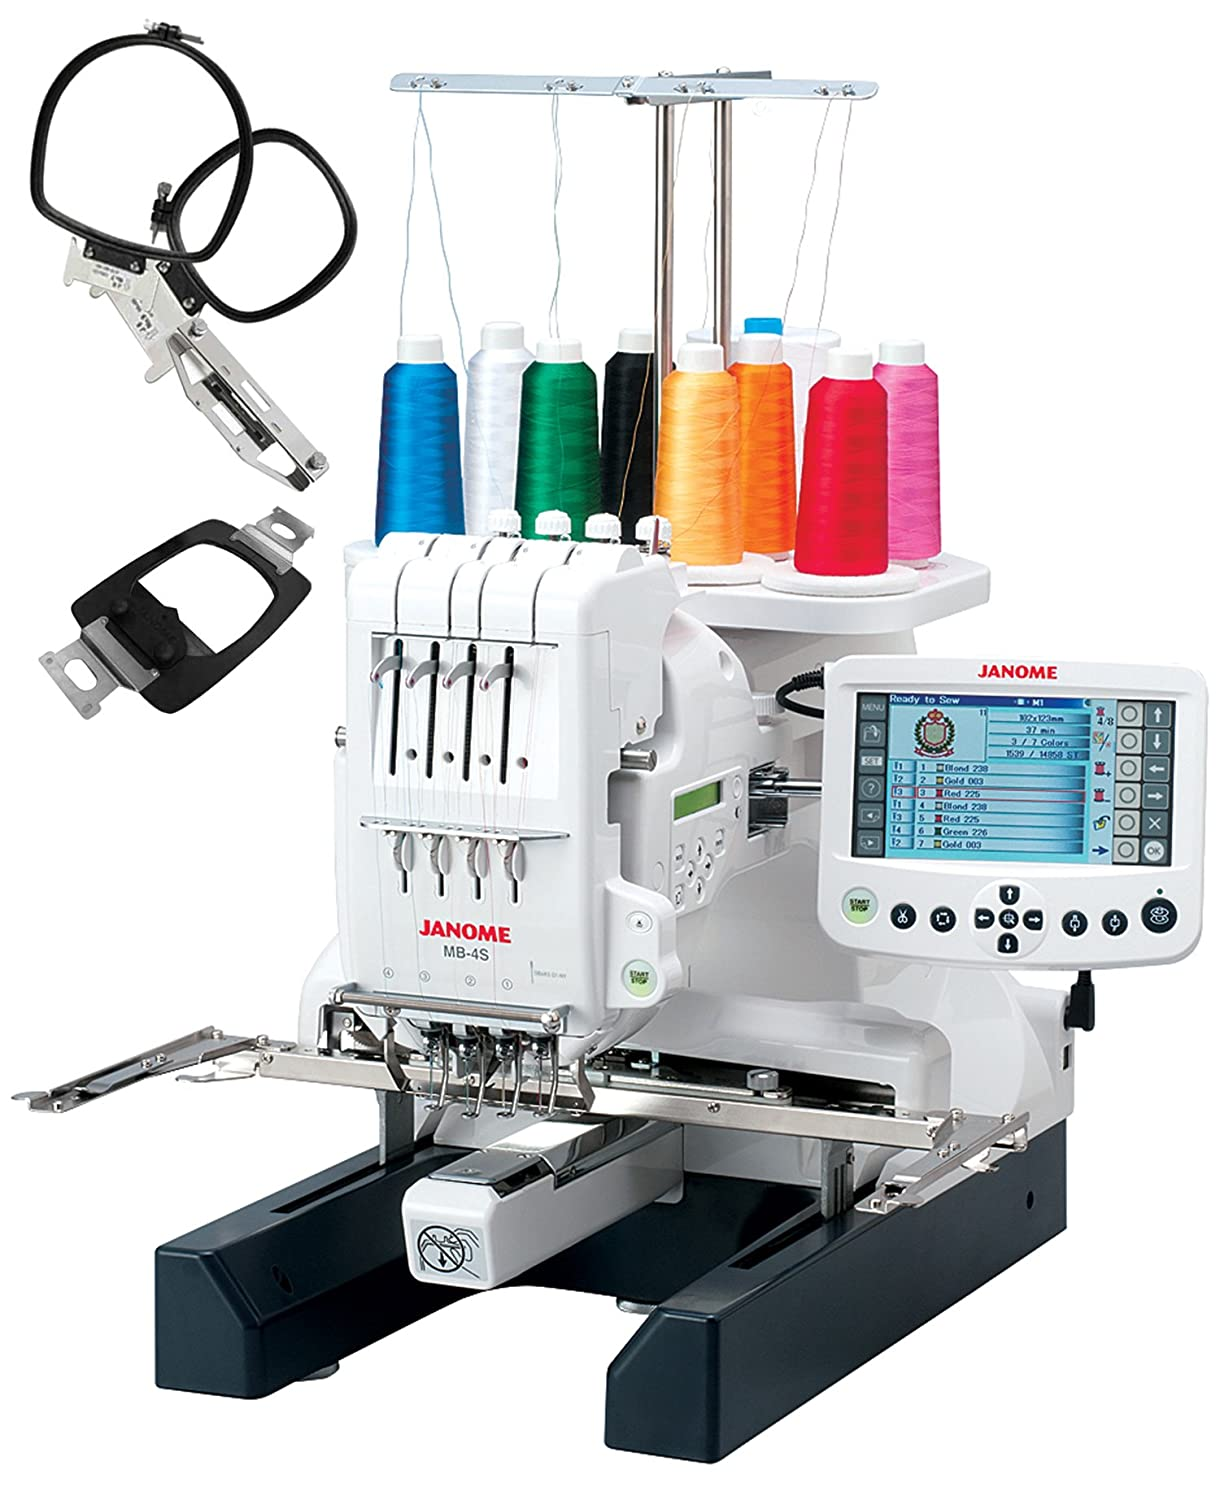 Embroidery machine review